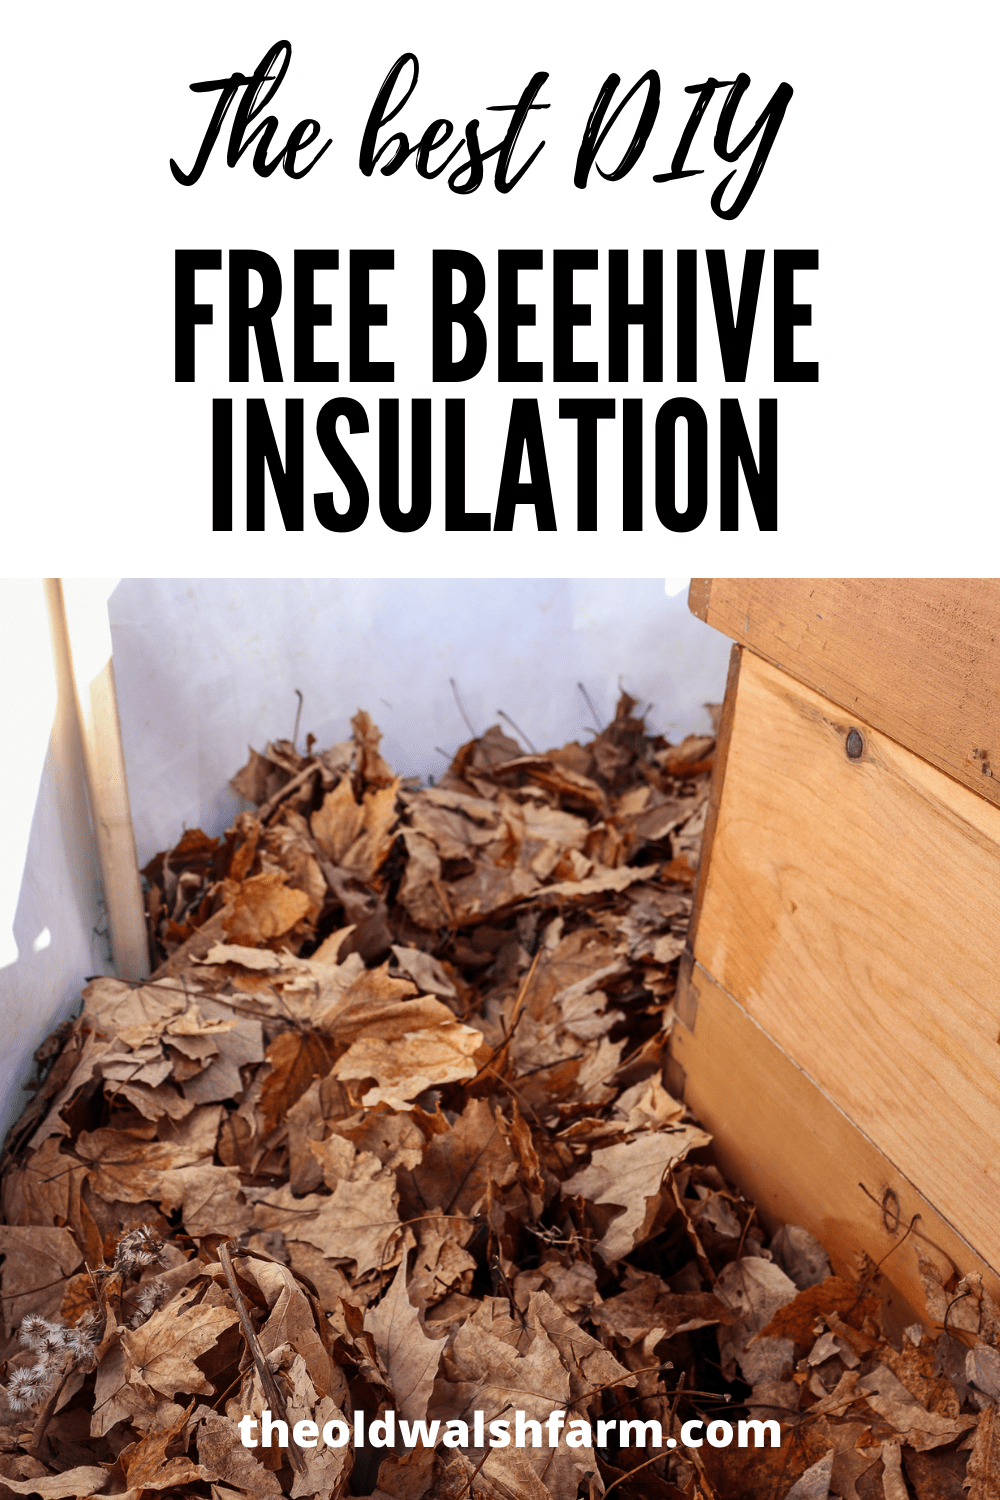 The best FREE DIY Beehive Insulation